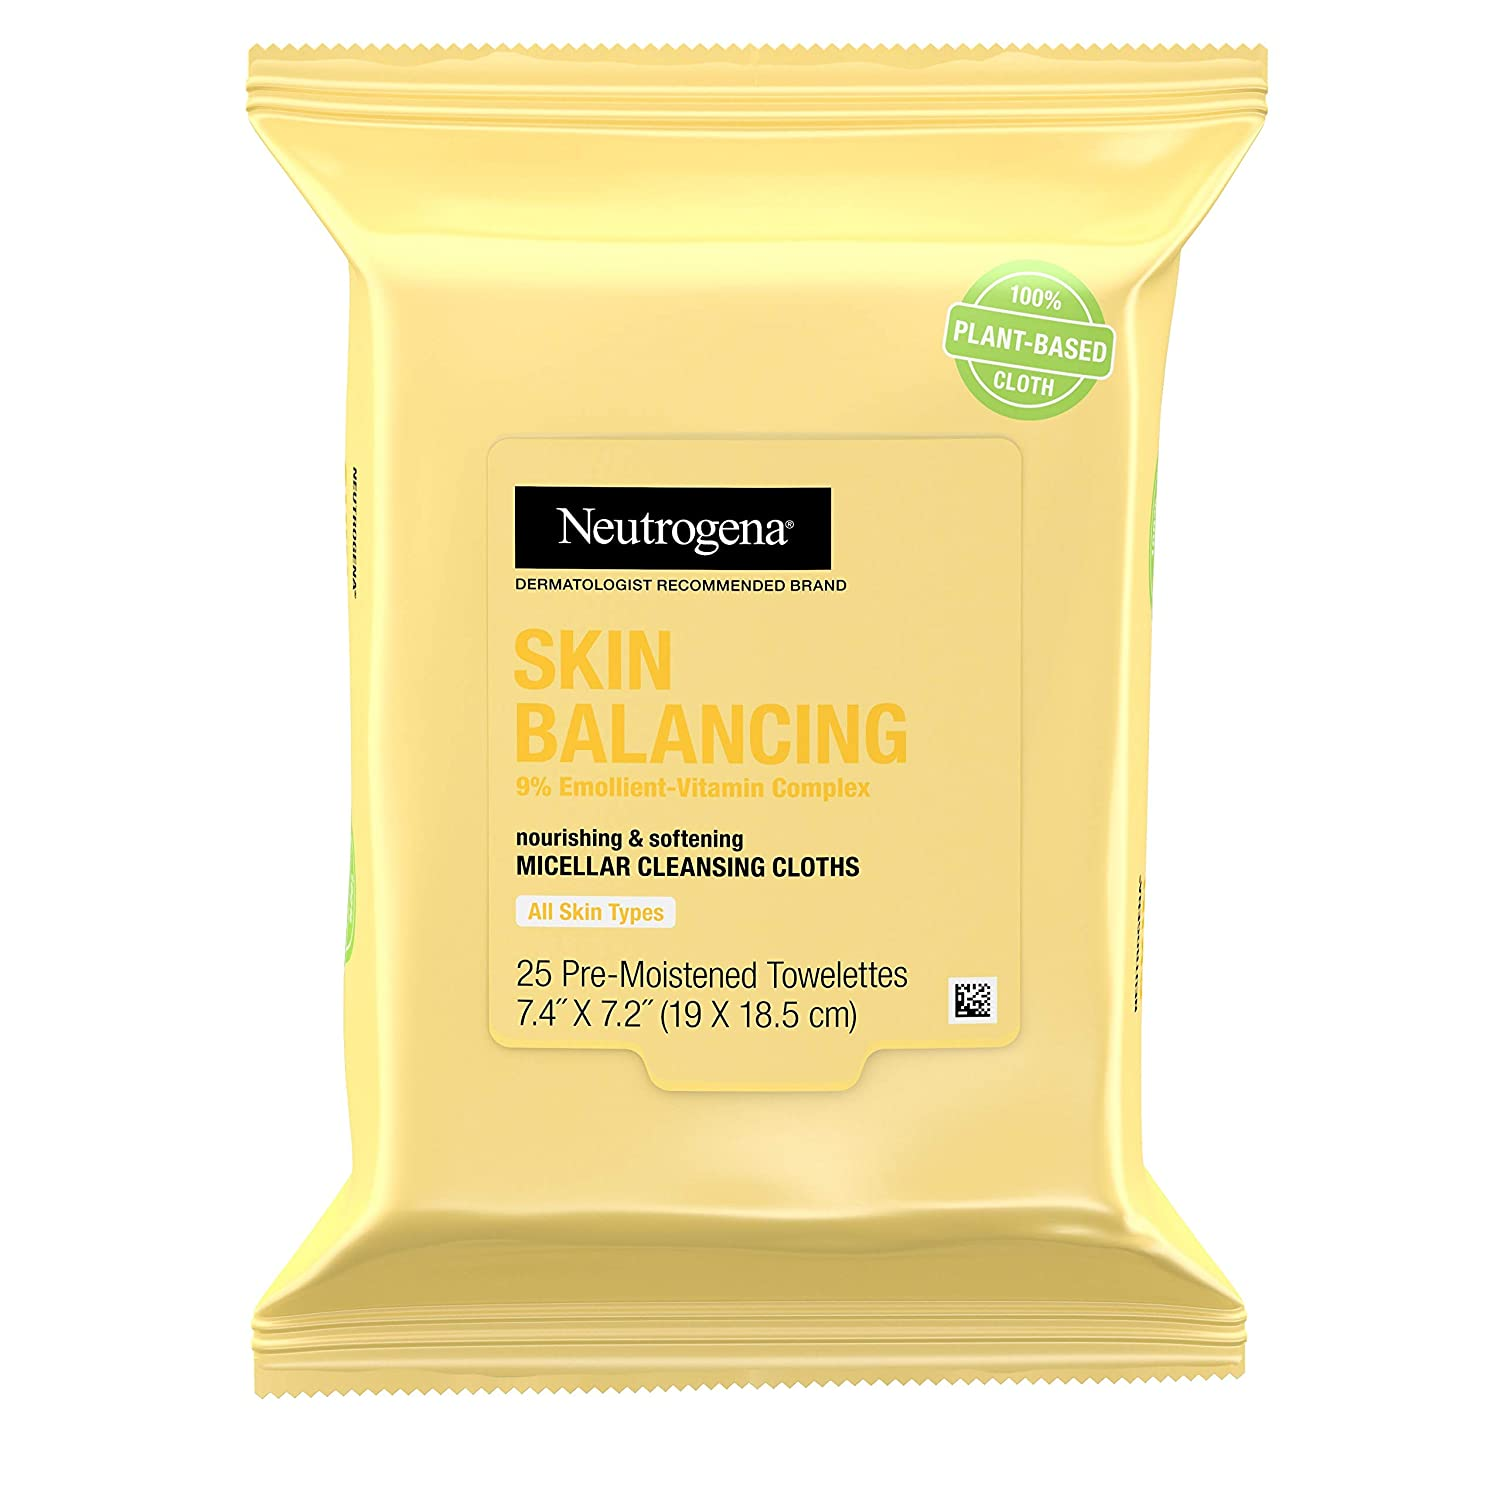 Neutrogena Skin Balancing Micellar Cleansing Cloths Makeup Remover Wipes, Plant-Based Nourishing Wipes with Vitamin & Pro-Vitamin B5, Paraben-Free, Hypoallergenic, 25 count